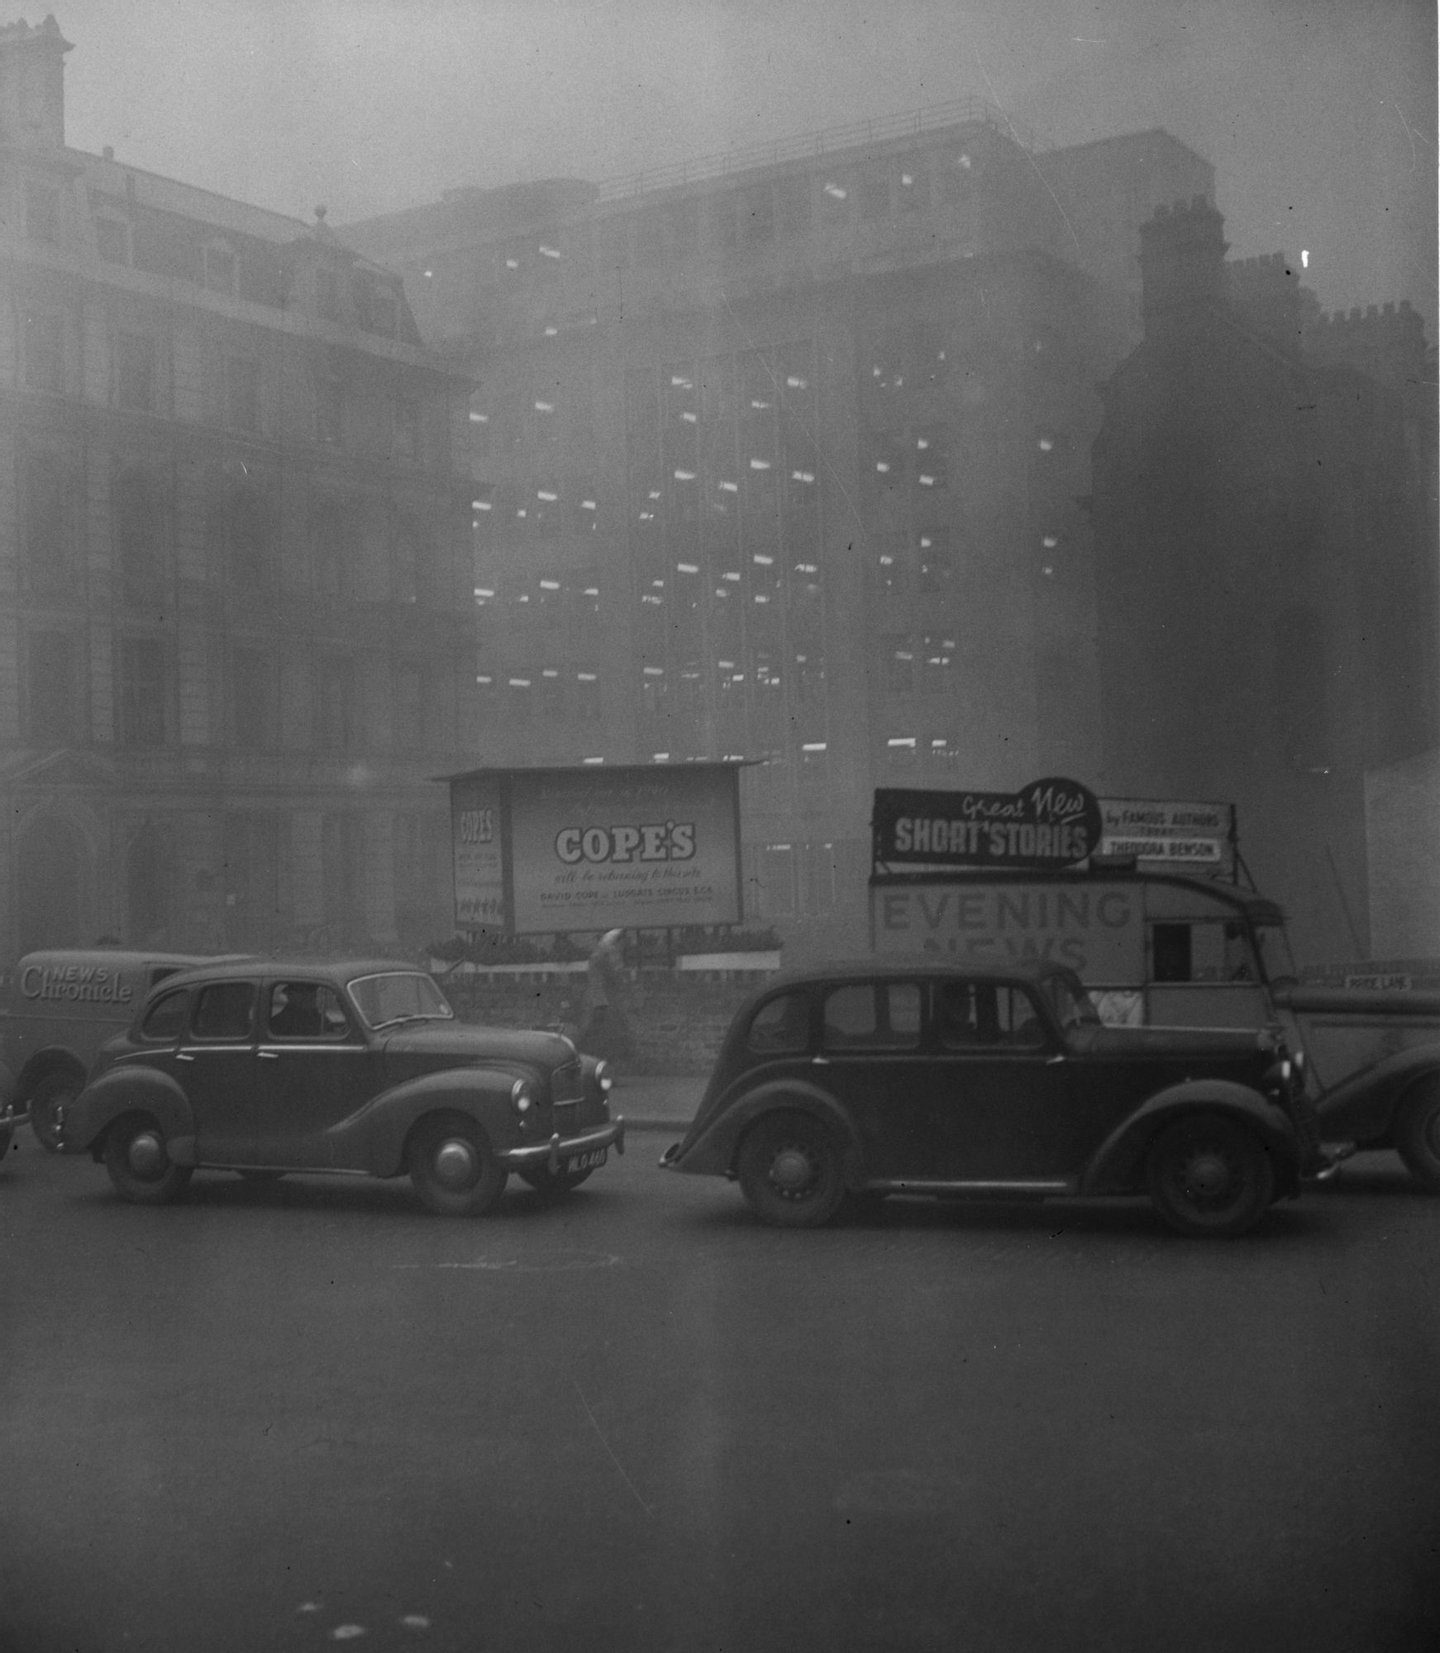 5th December 1952: Morning traffic at Blackfriars, London almost at a standstill because of the blanket smog. (Photo by Don Price/Fox Photos/Getty Images)